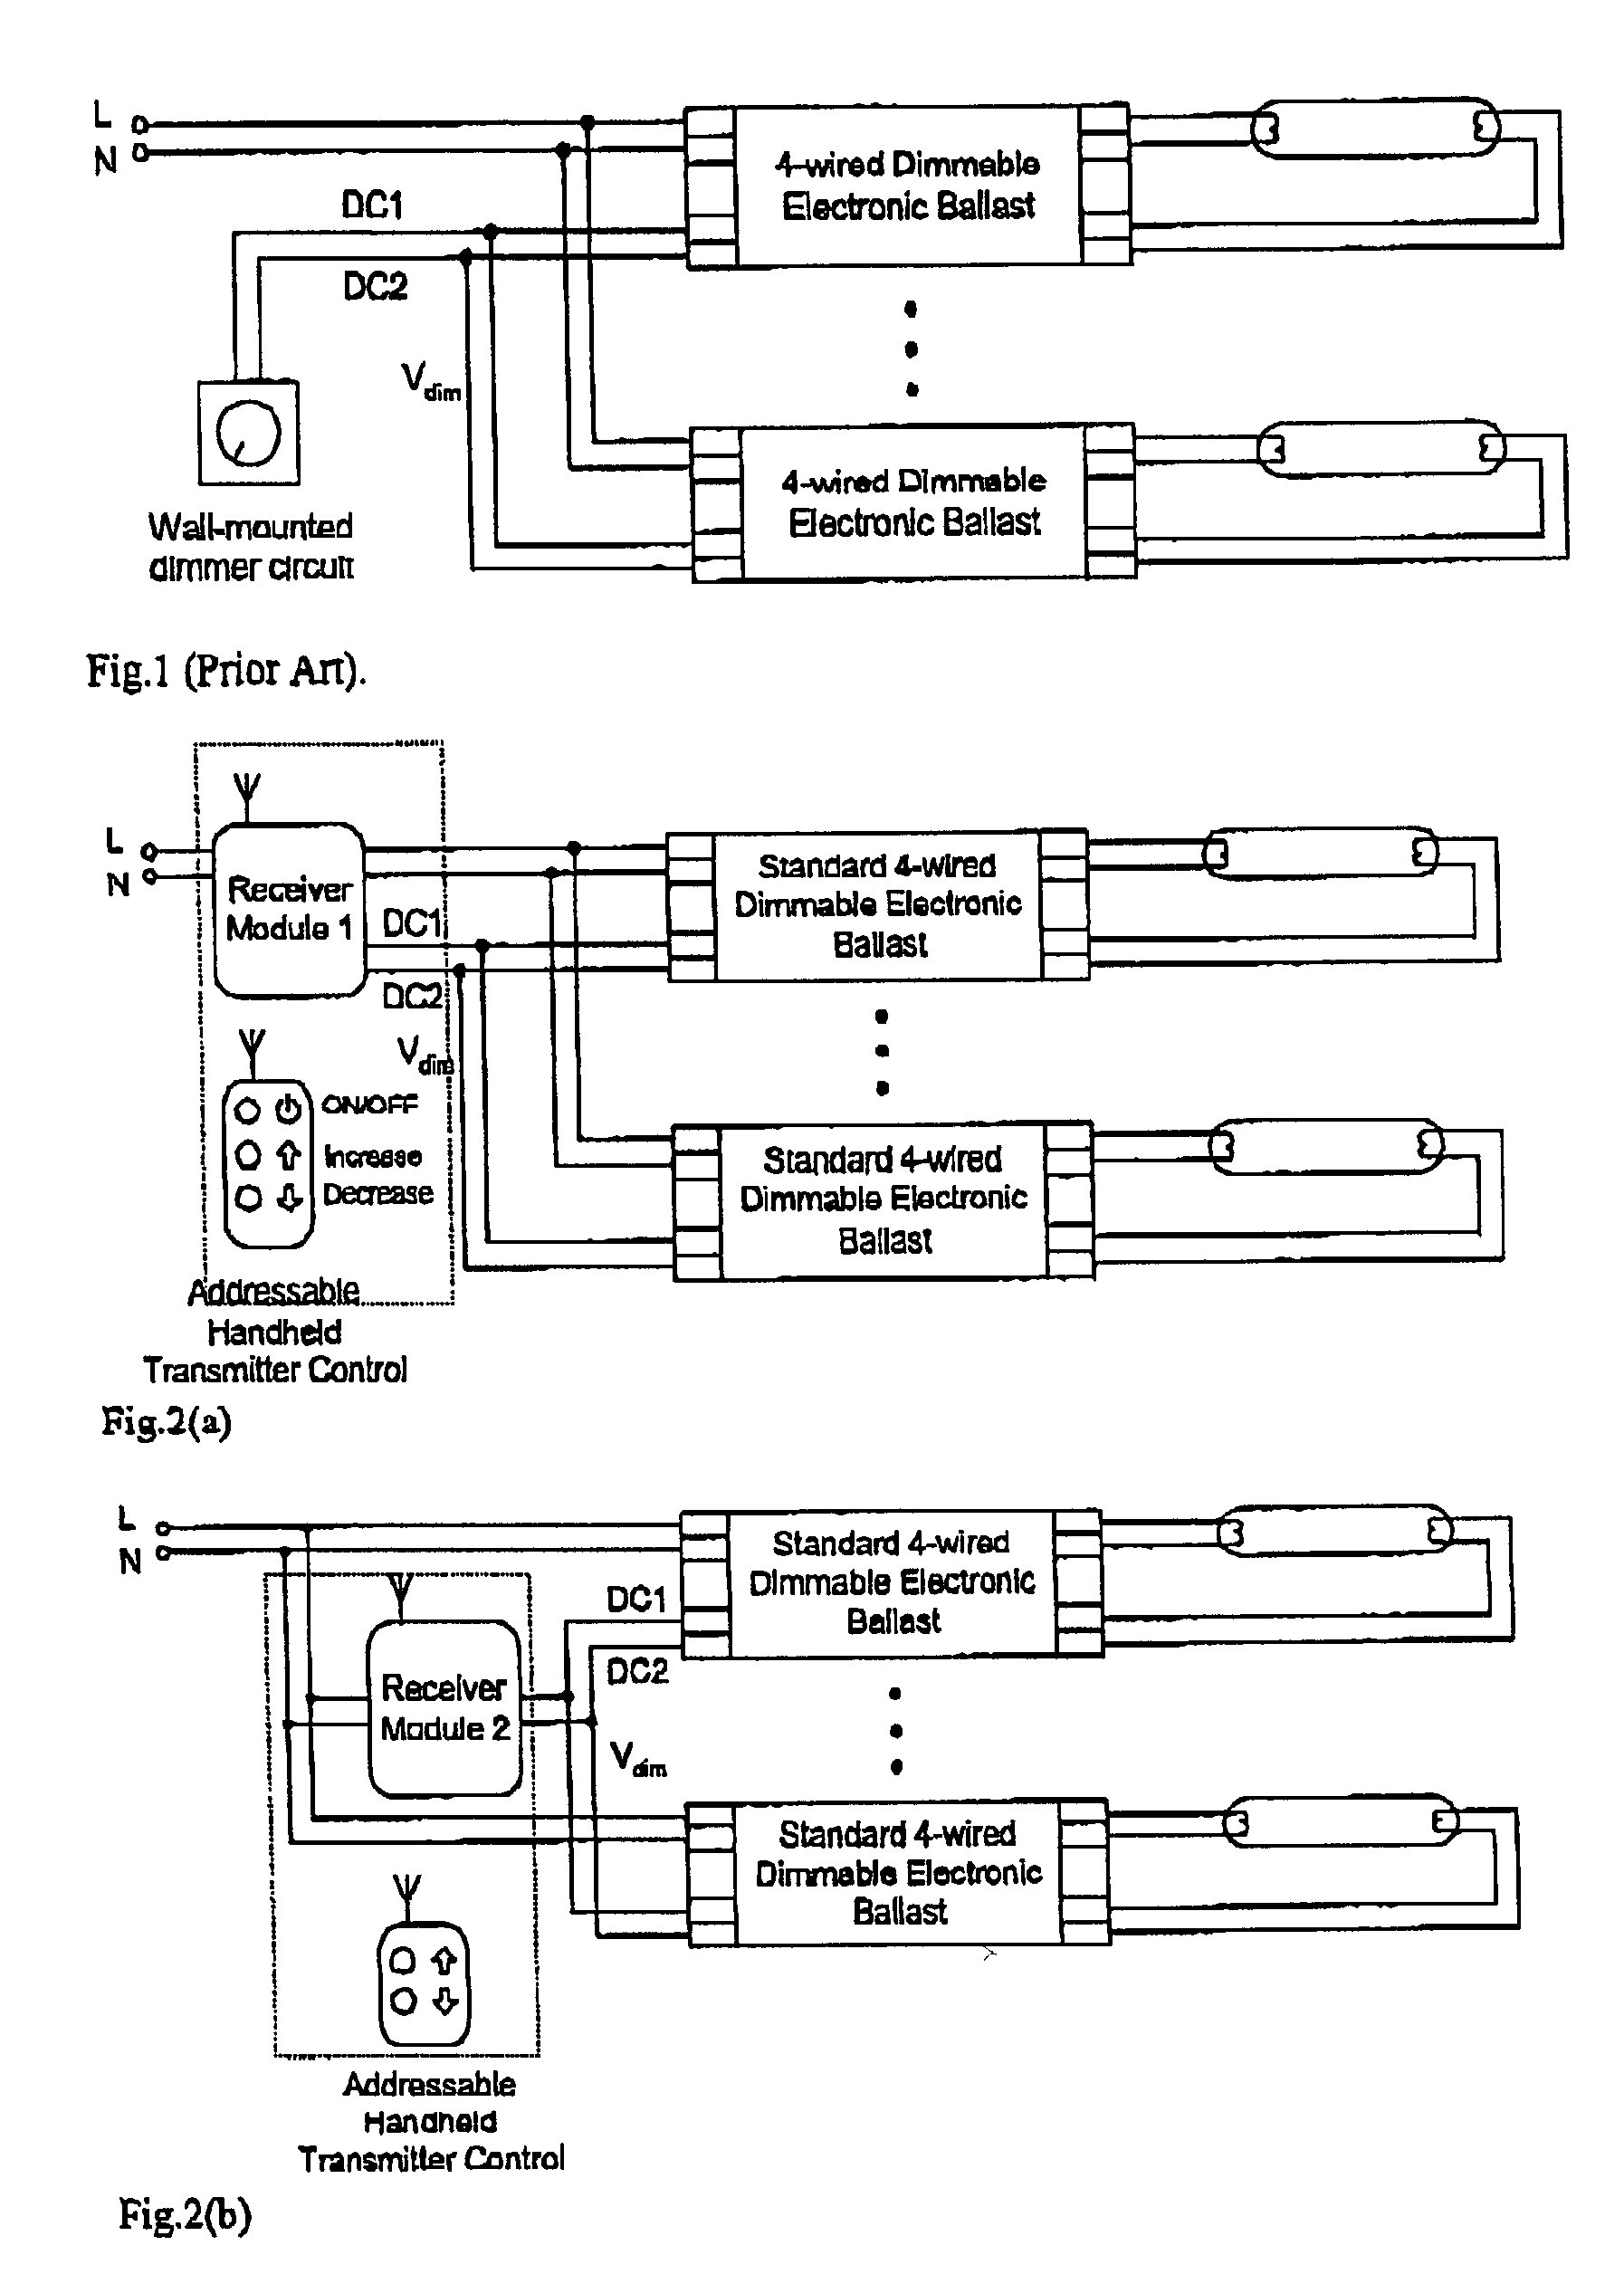 lutron cl dimmer wiring diagram unique wiring diagram image lutron maestro 3 way dimmer wiring diagram lutron maestro 3 way dimmer wiring diagram lutron maestro 3 way dimmer wiring diagram lutron maestro 3 way dimmer wiring diagram